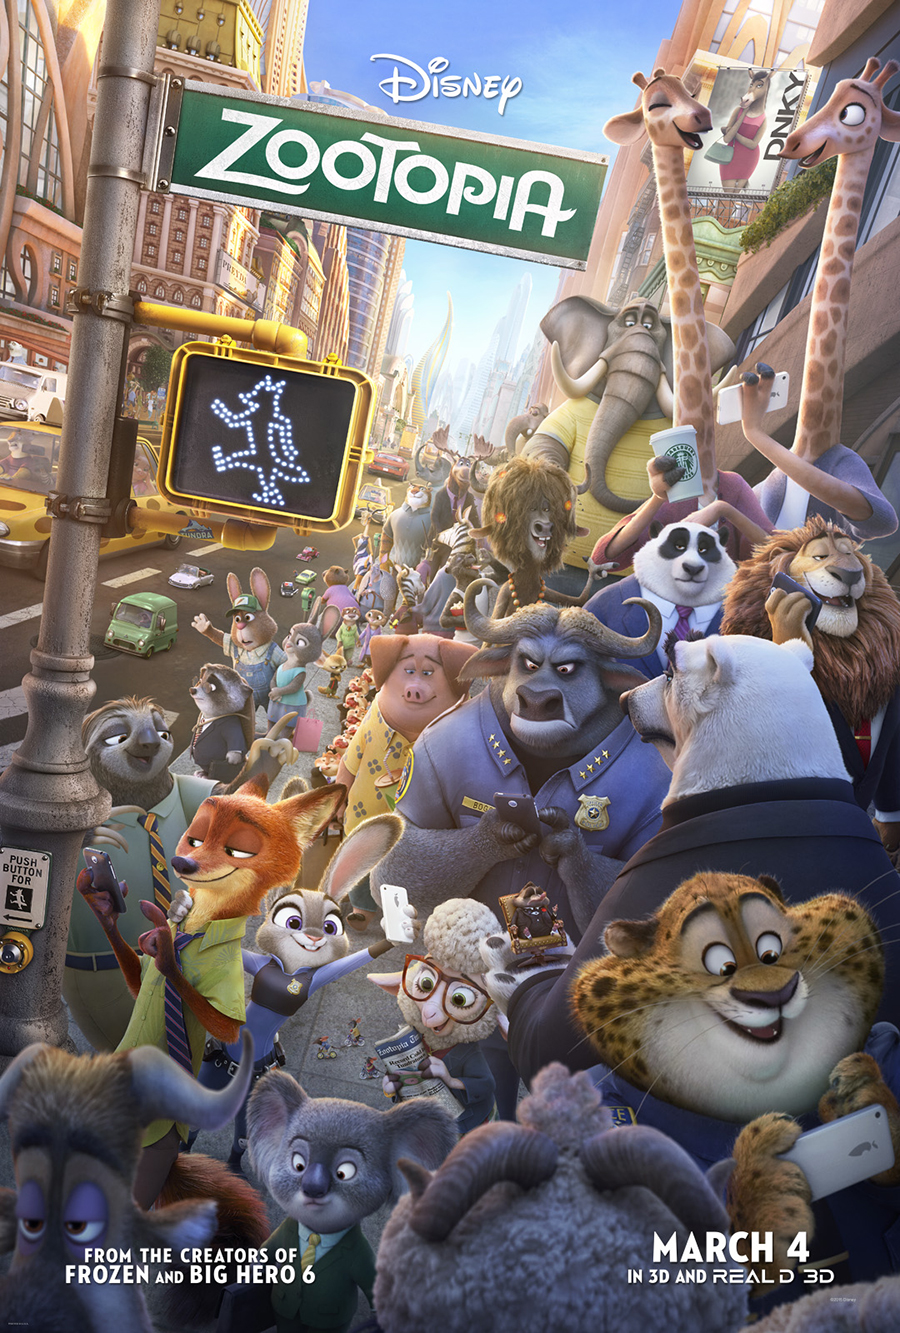 Sign Up for the Disney Parks Blog 'Zootopia' Meet-Up at Disney Springs